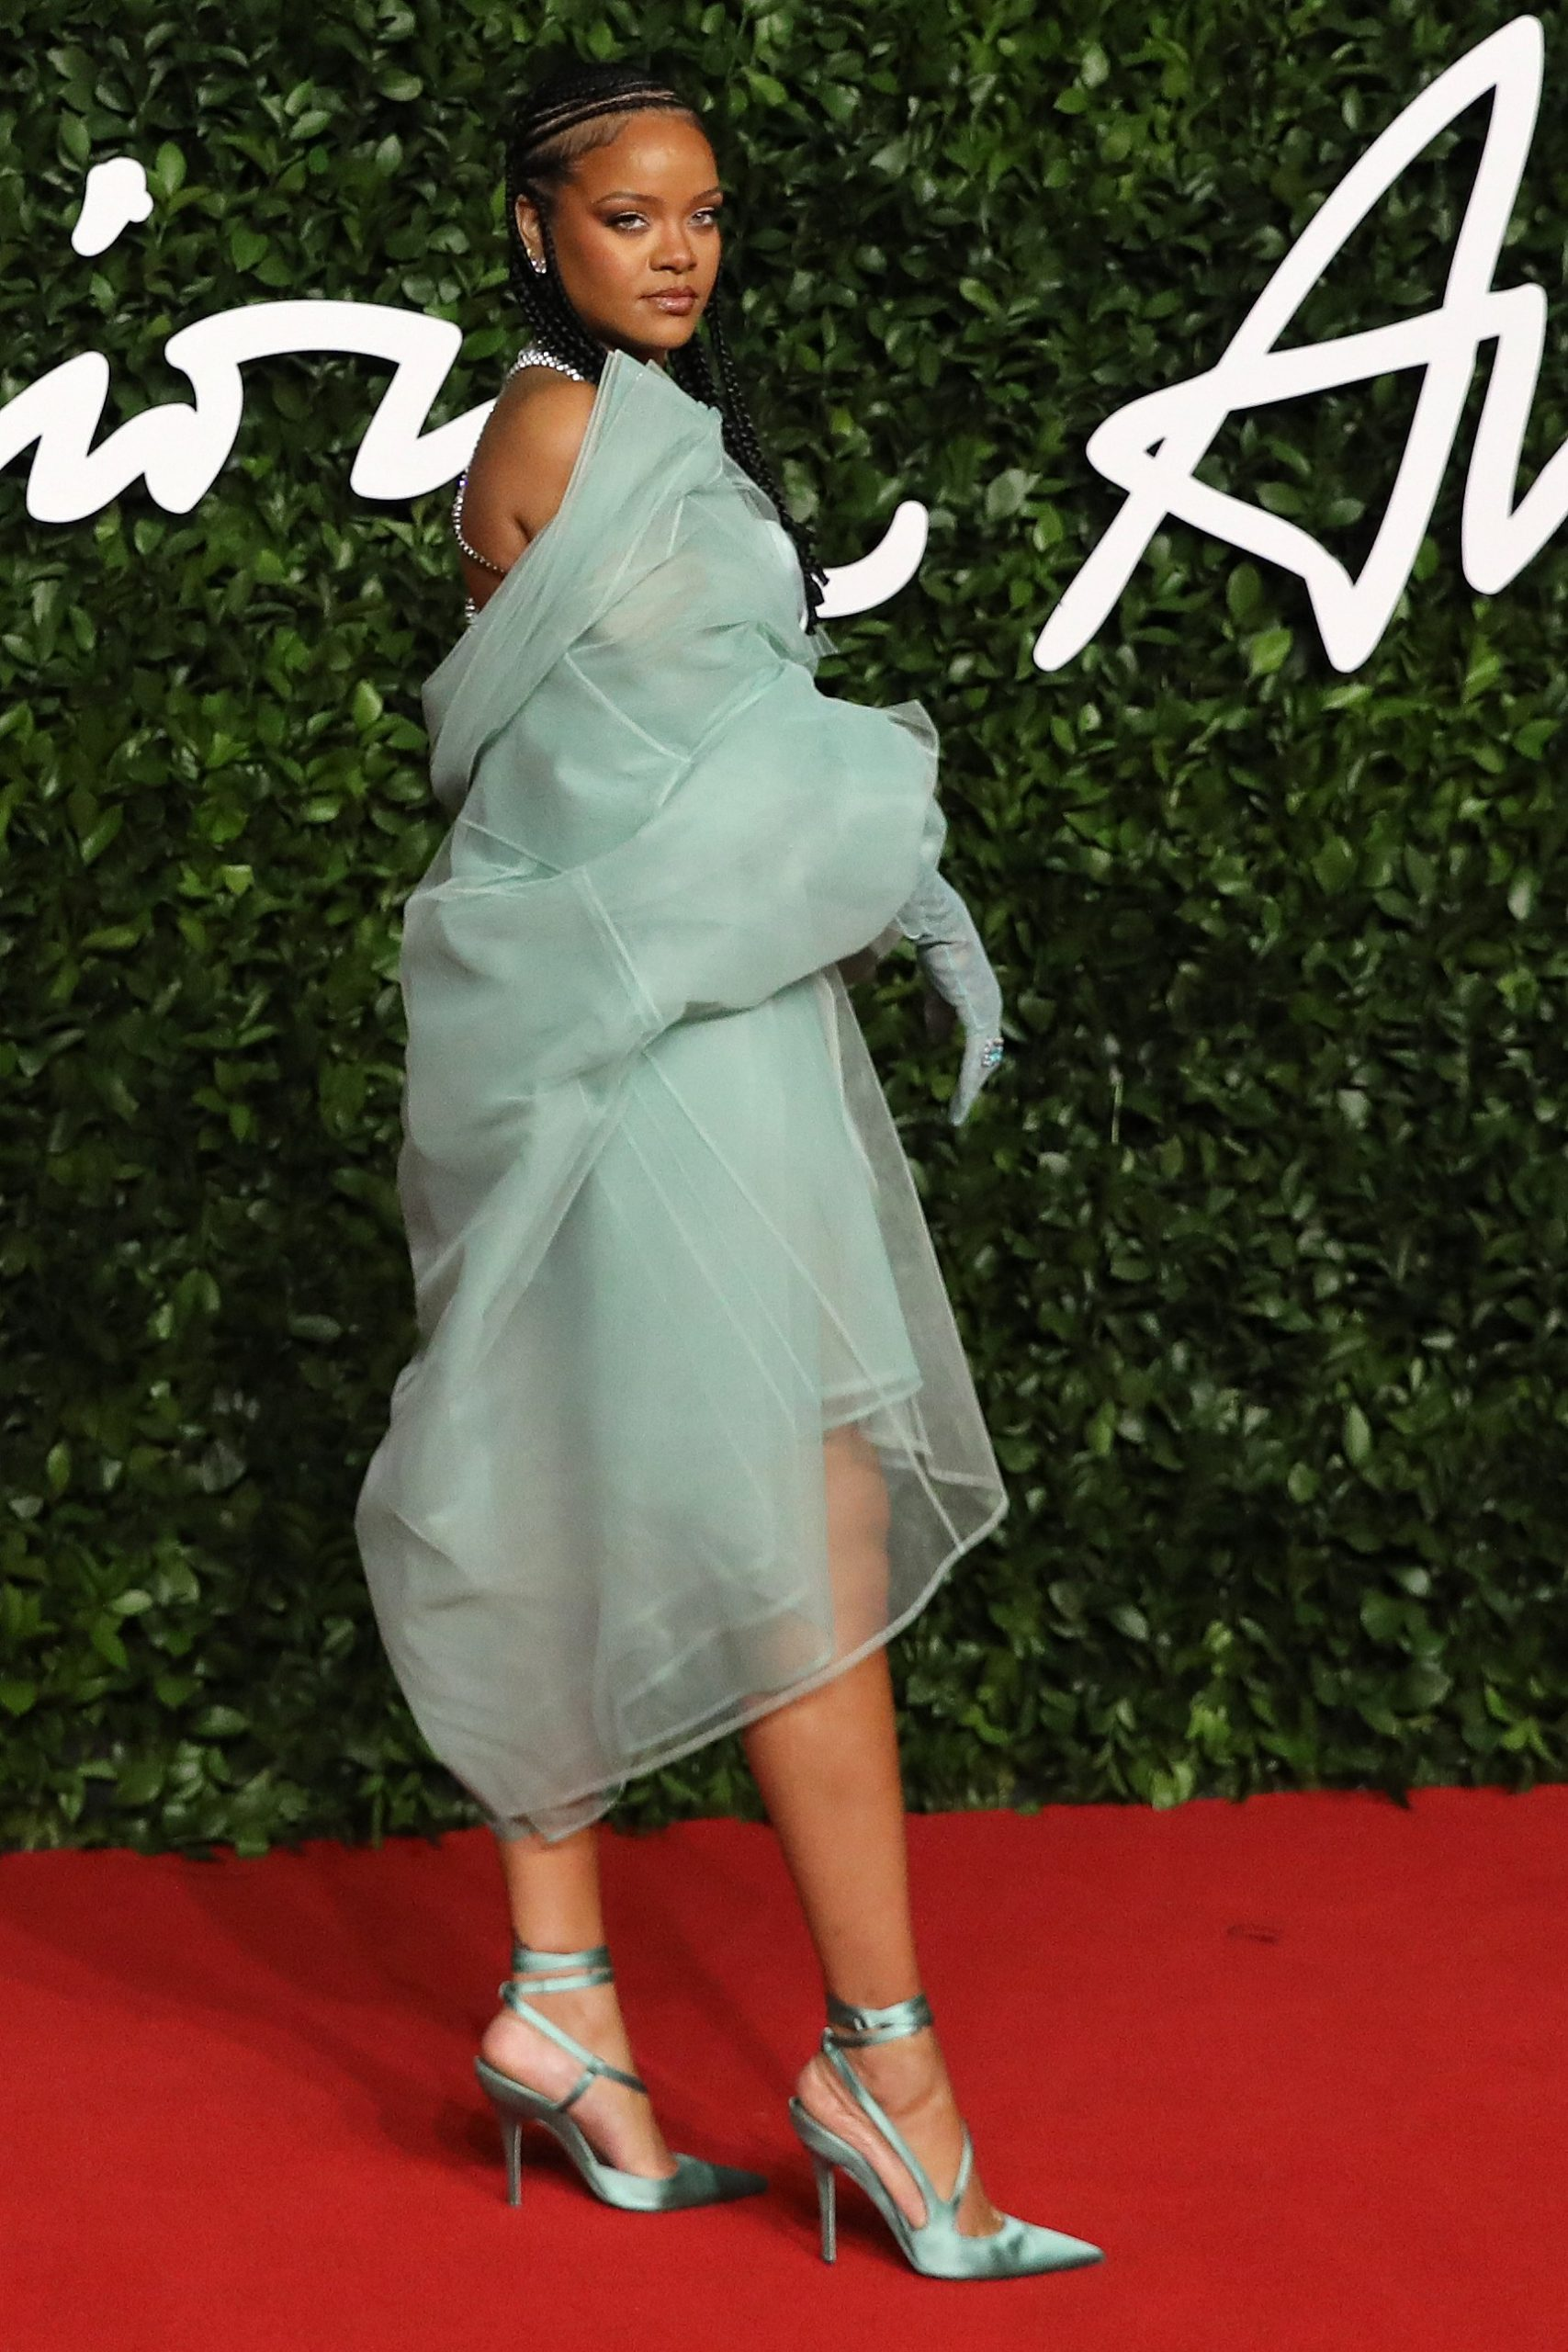 Rihanna attends The Fashion Awards 2019